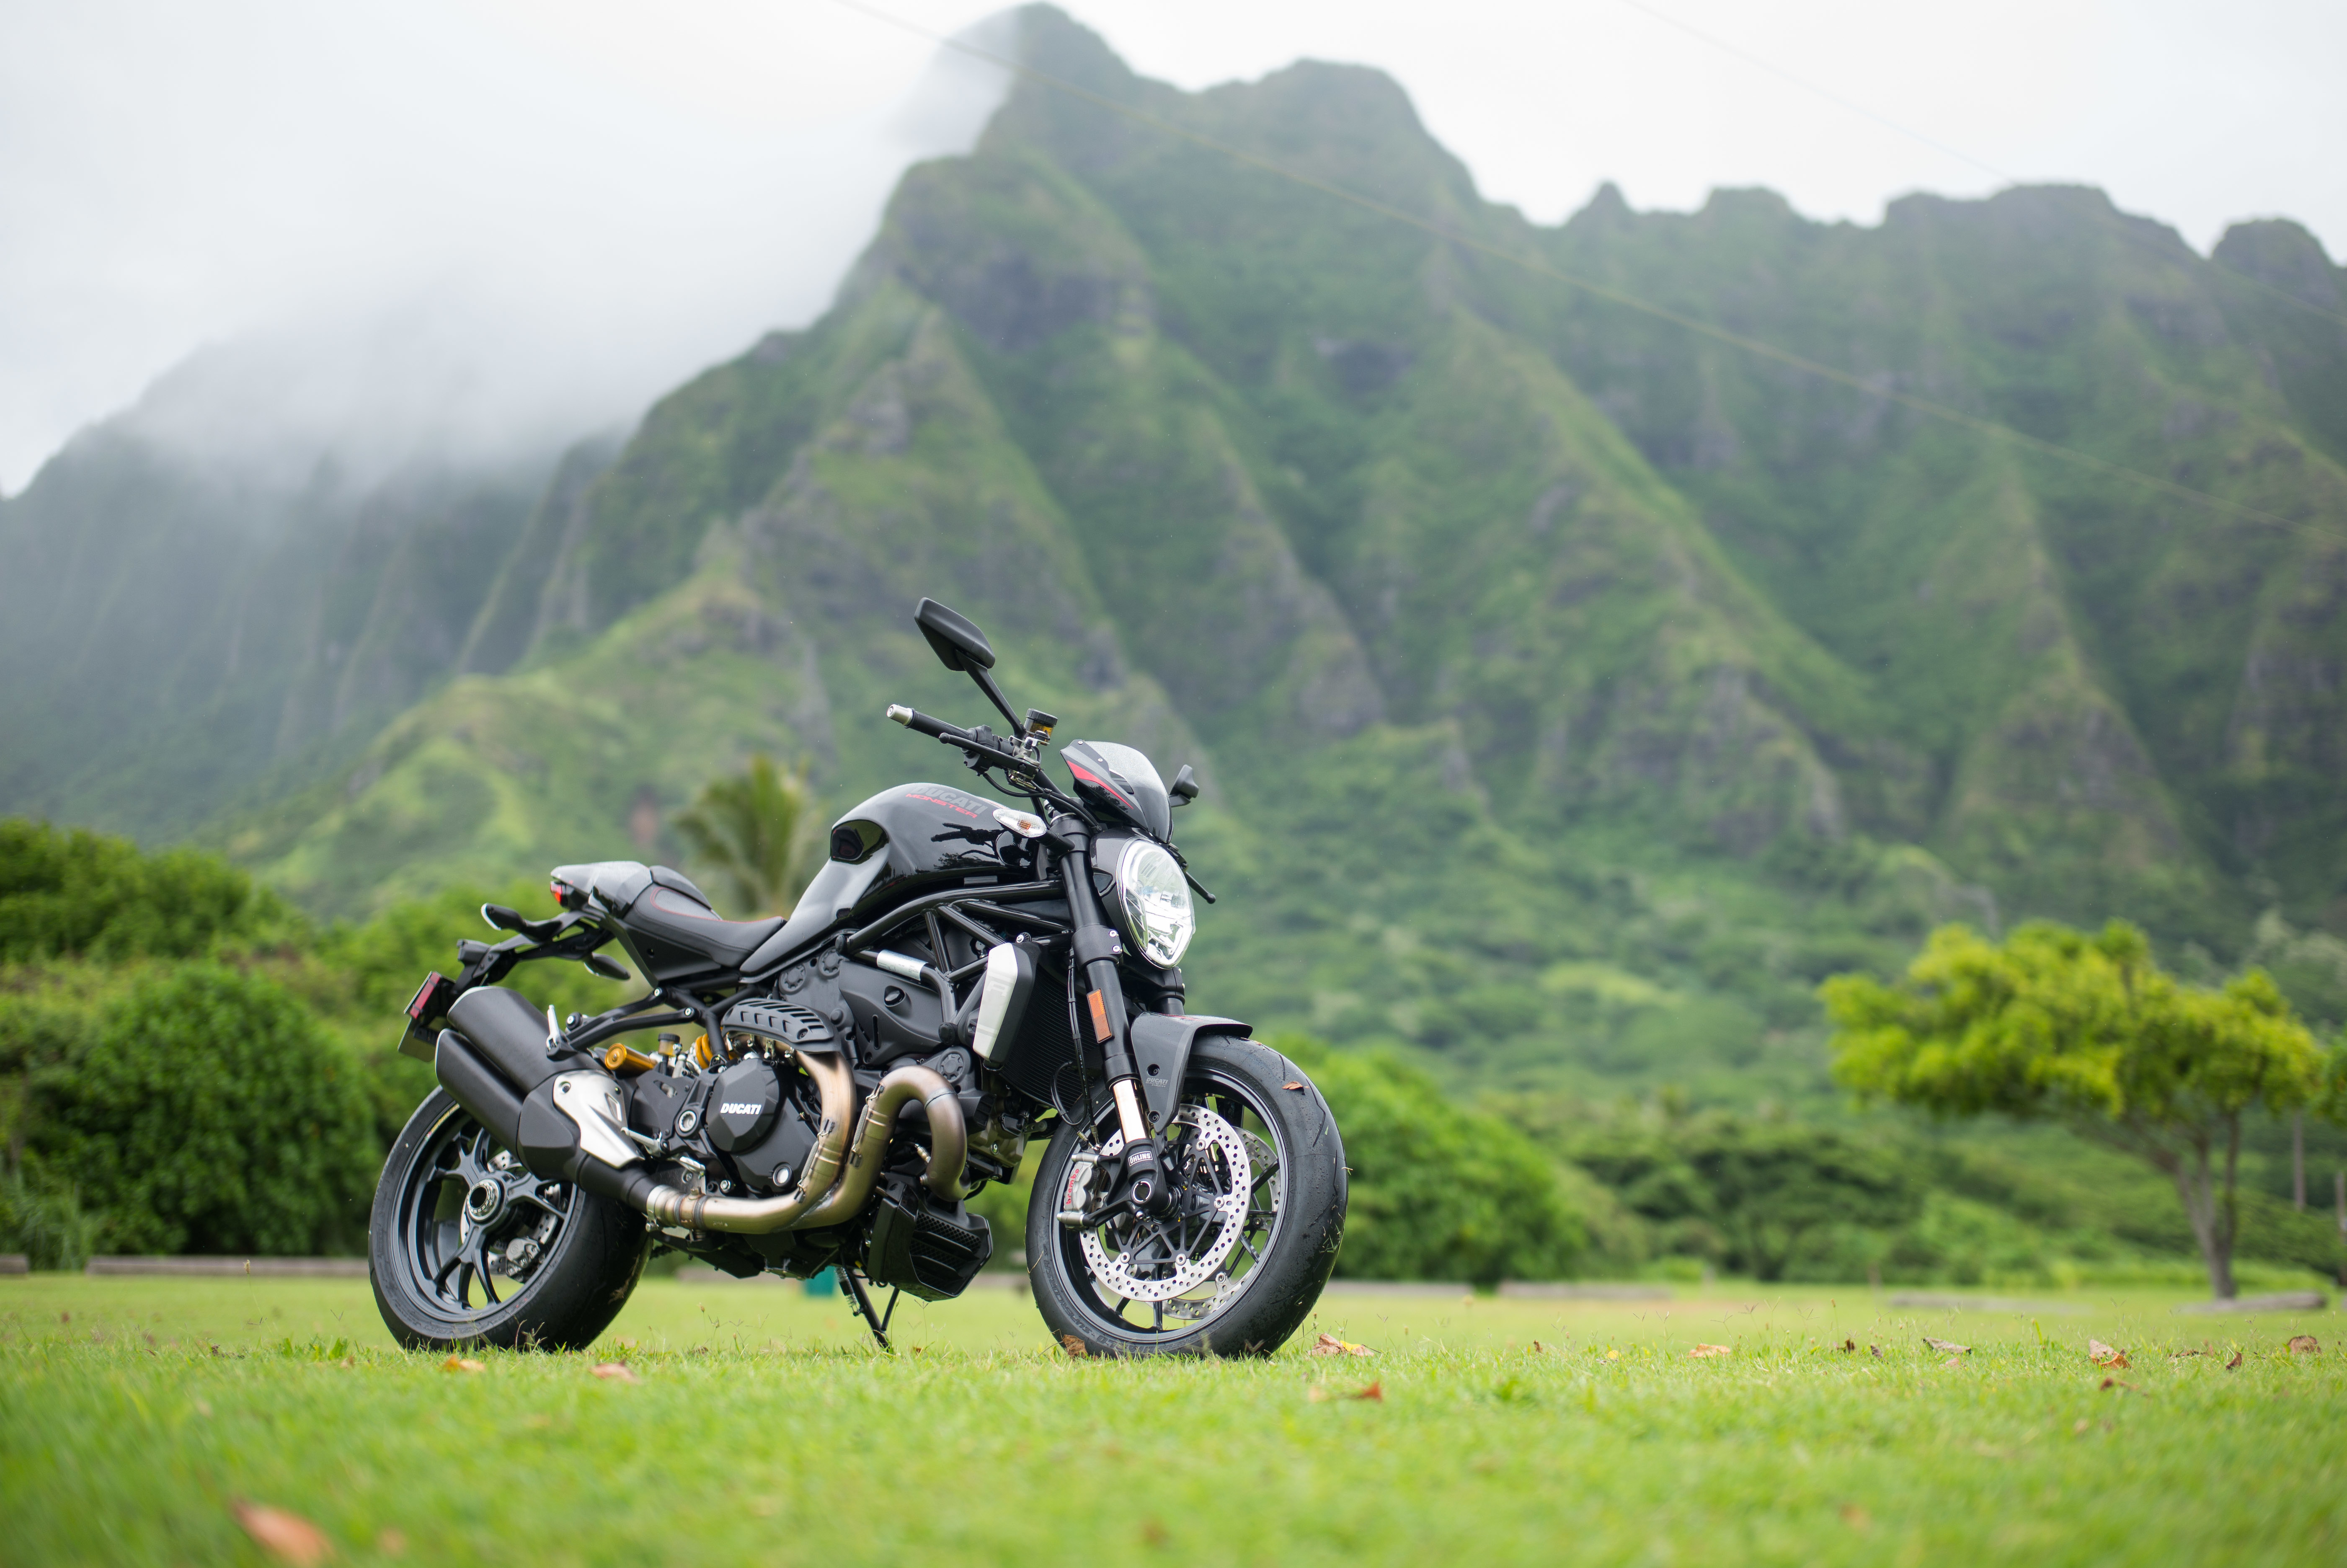 South seas cycles in honolulu hi 808 836 1 for South maui motors inventory